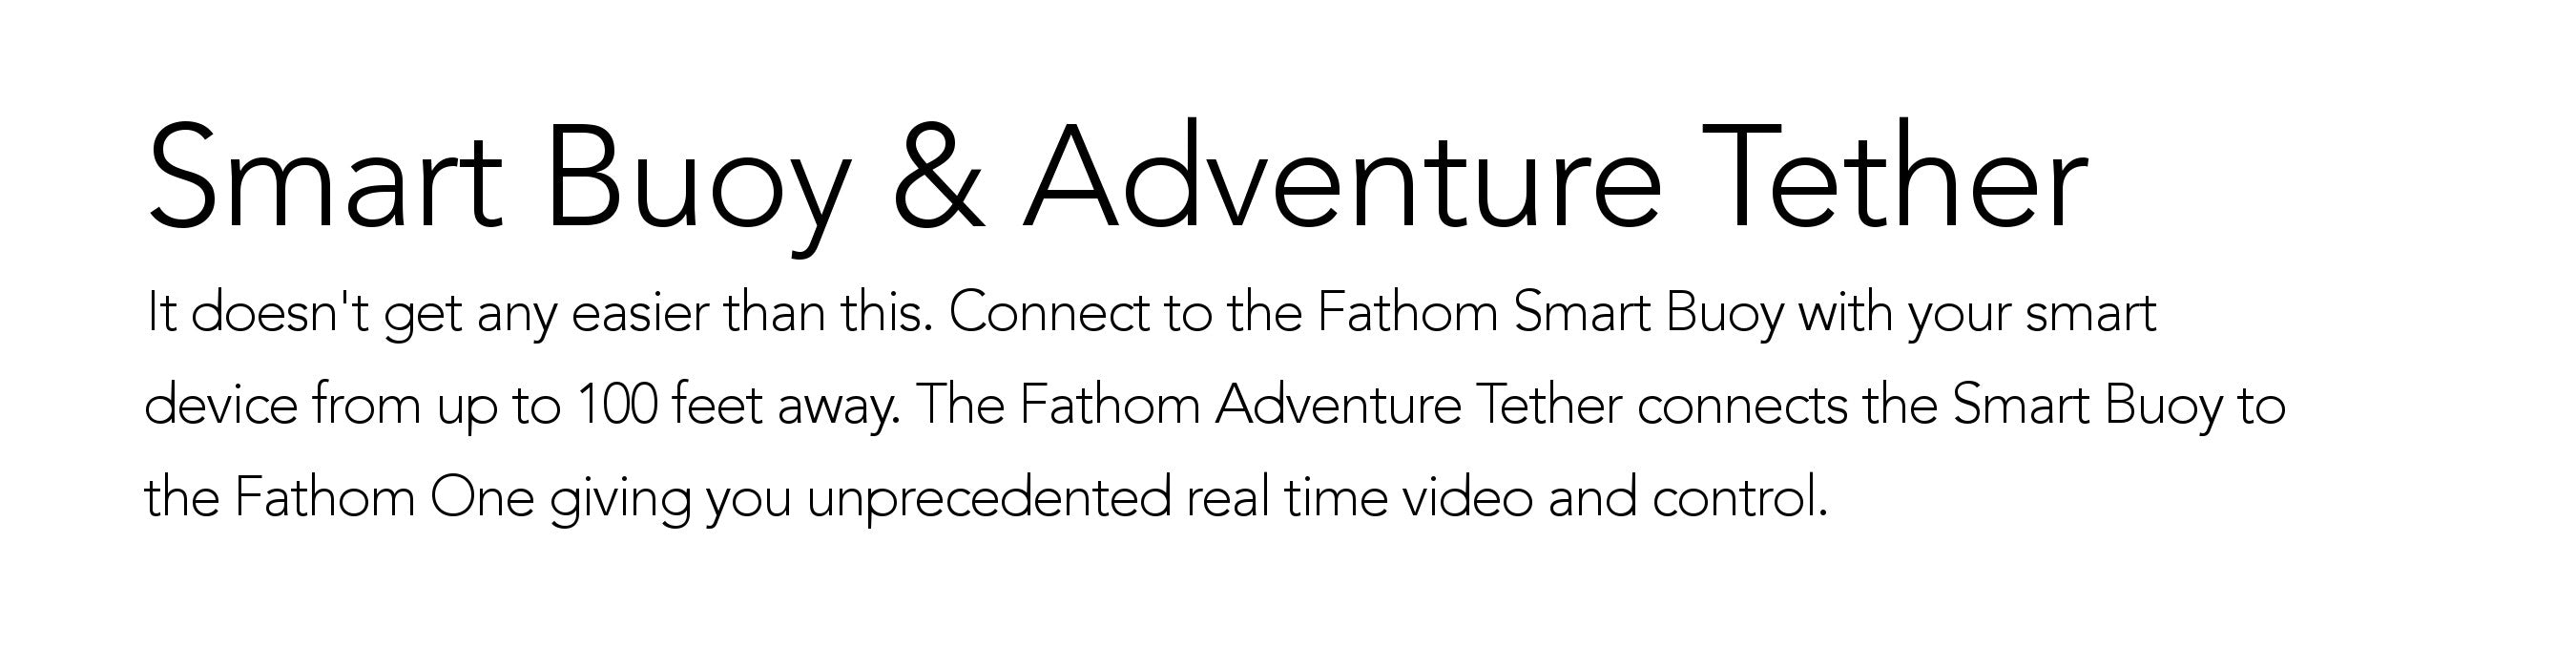 Smart Buoy & Adventure Tether. It doesn't get any easier than this. Connect to the Fathom Smart Buoy with your smart device from up to 100 feet away. The Fathom Adventure Tether connects the Smart Buoy to the Fathom One giving you unprecedented real time video and control.